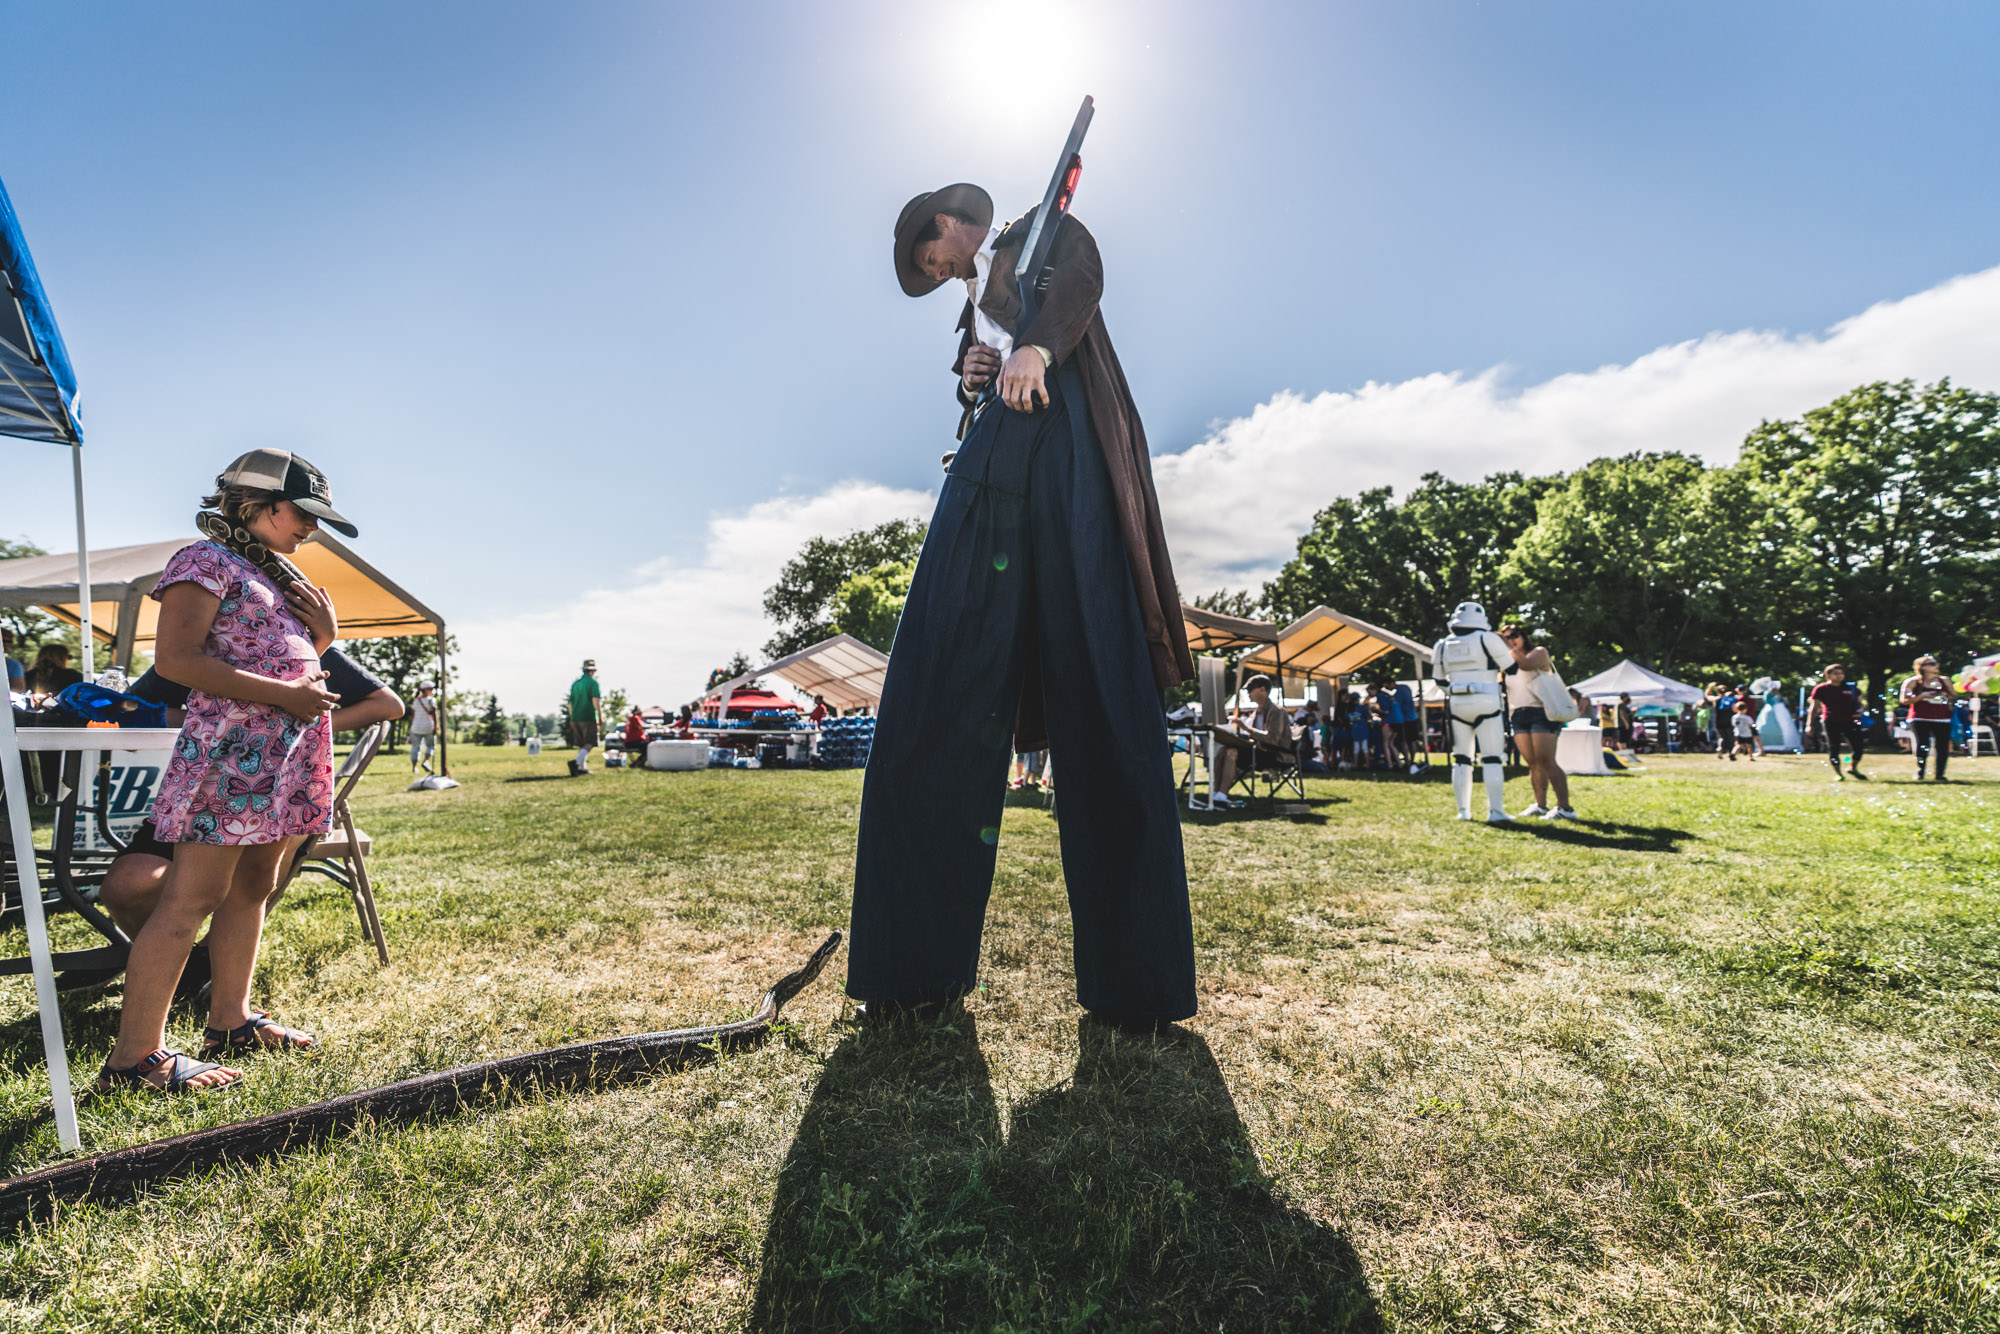 Man on stilts at an event ground looks down at a giant snake who is roaming free at the event